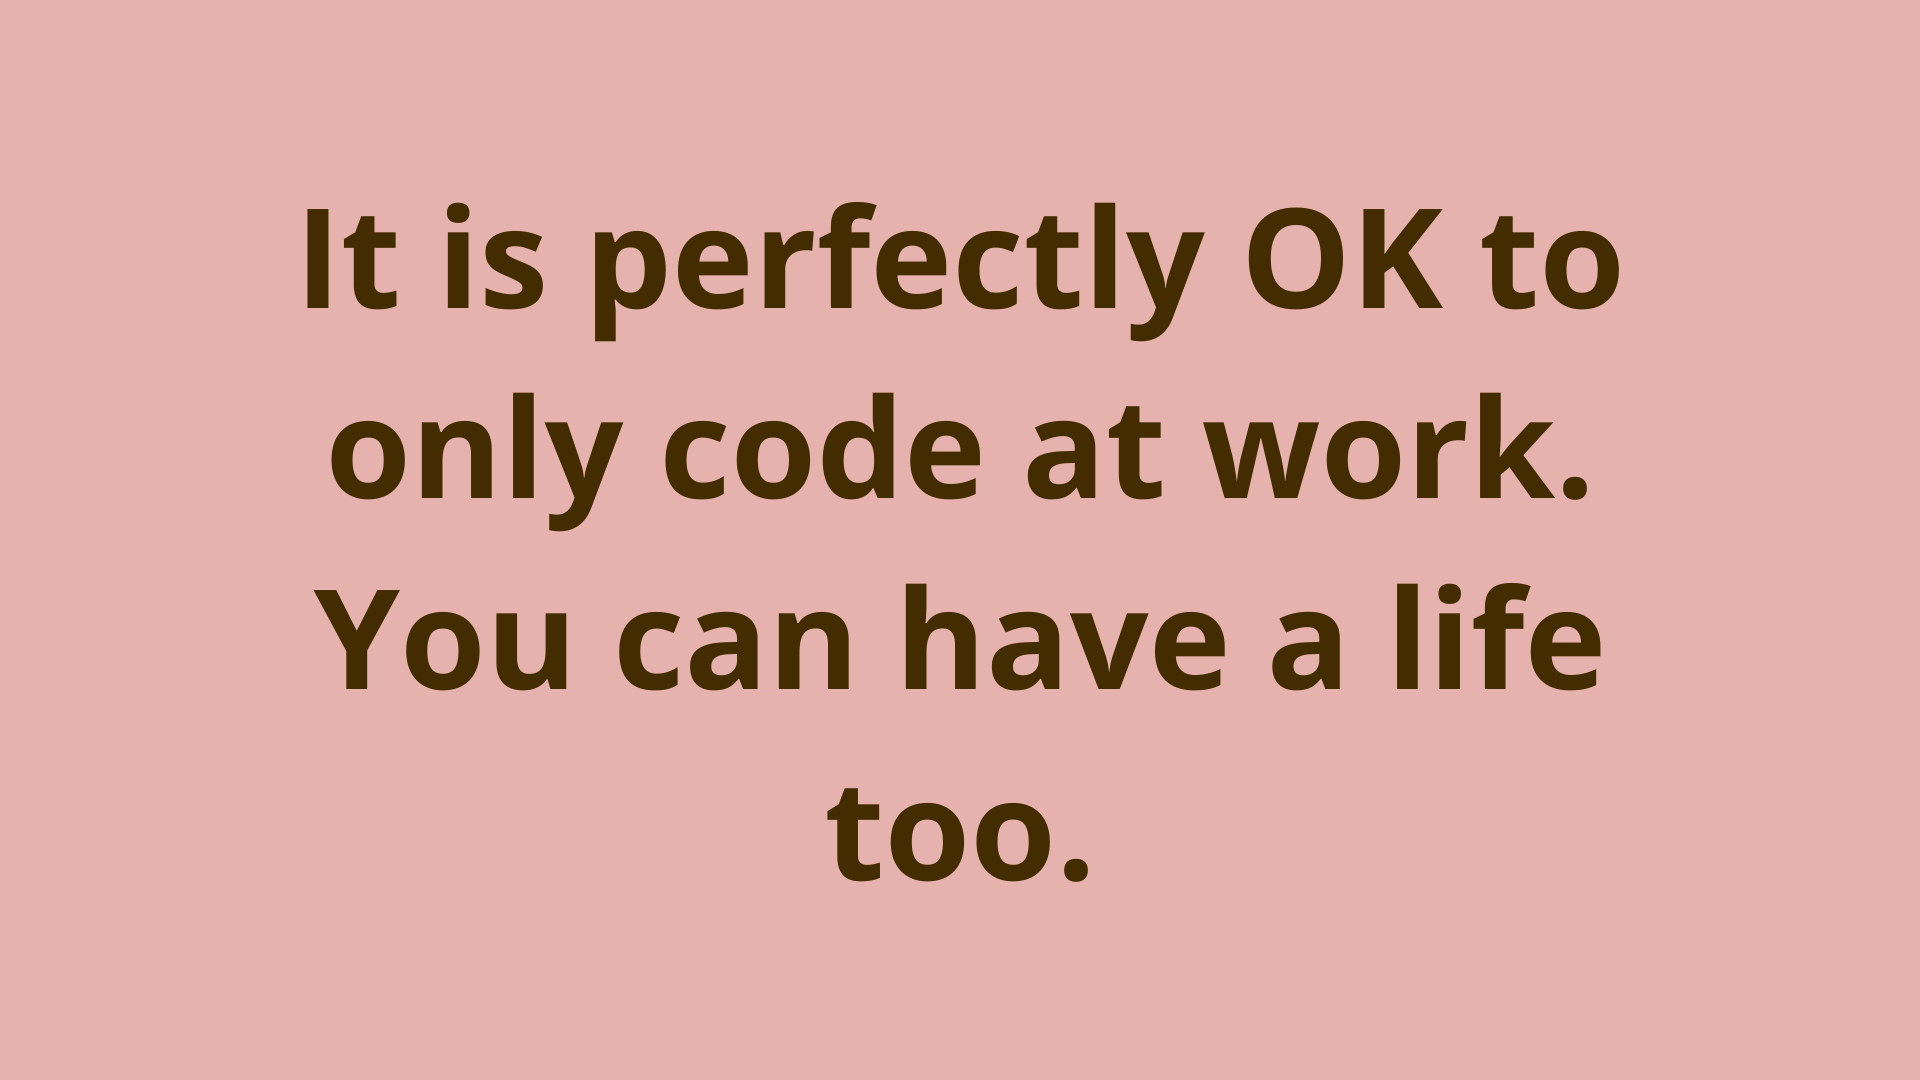 Image of It is perfectly OK to only code at work, you can have a life too